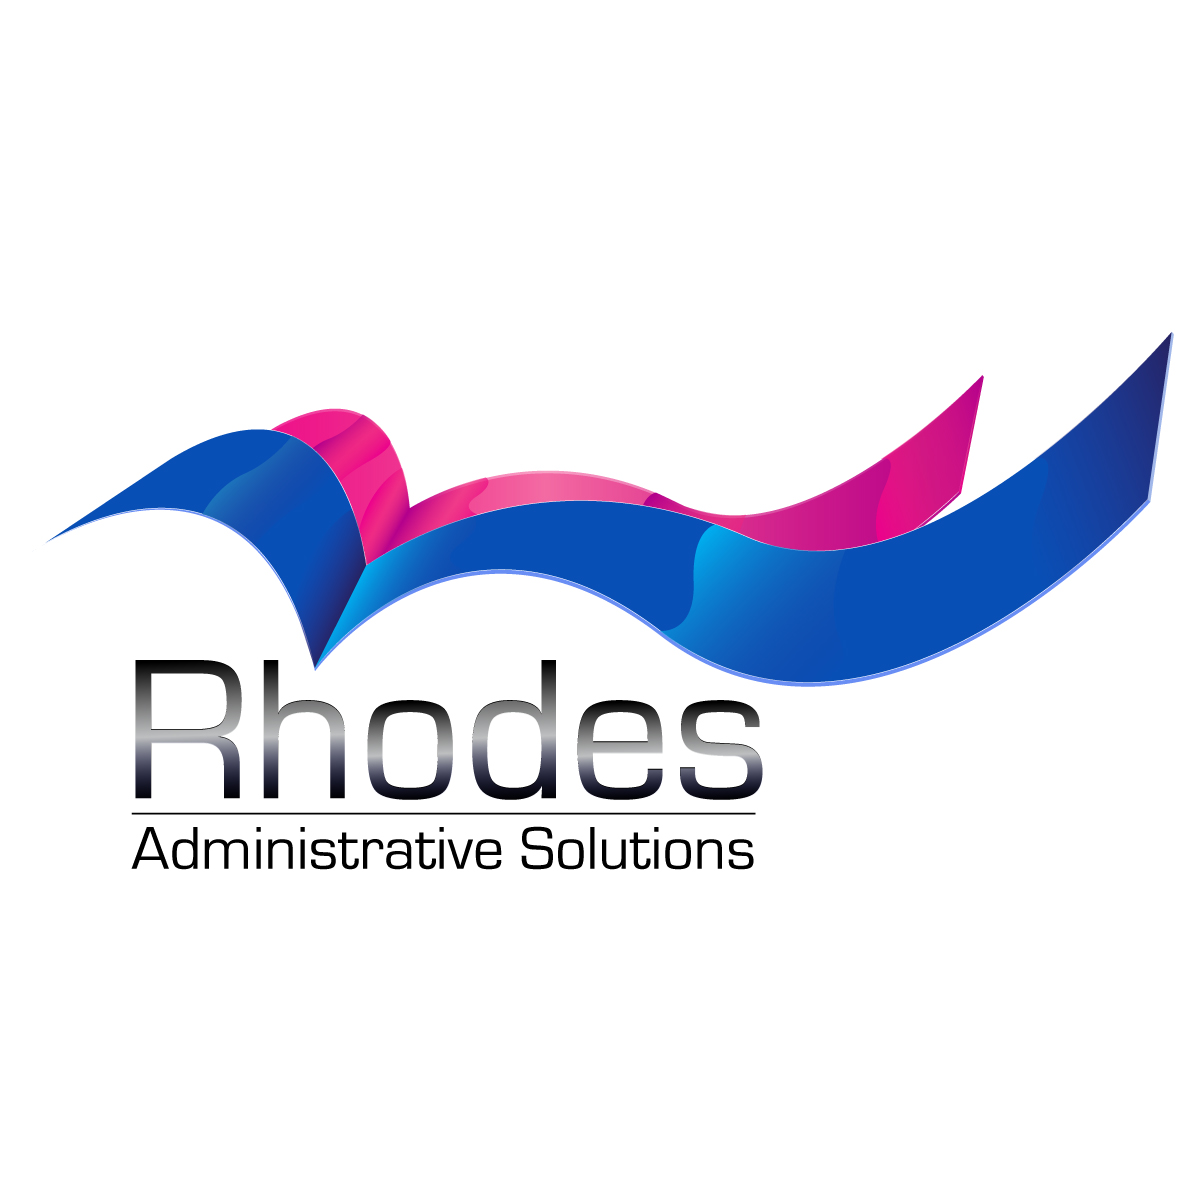 Logo Design by storm - Entry No. 81 in the Logo Design Contest Rhodes Administrative Solutions.